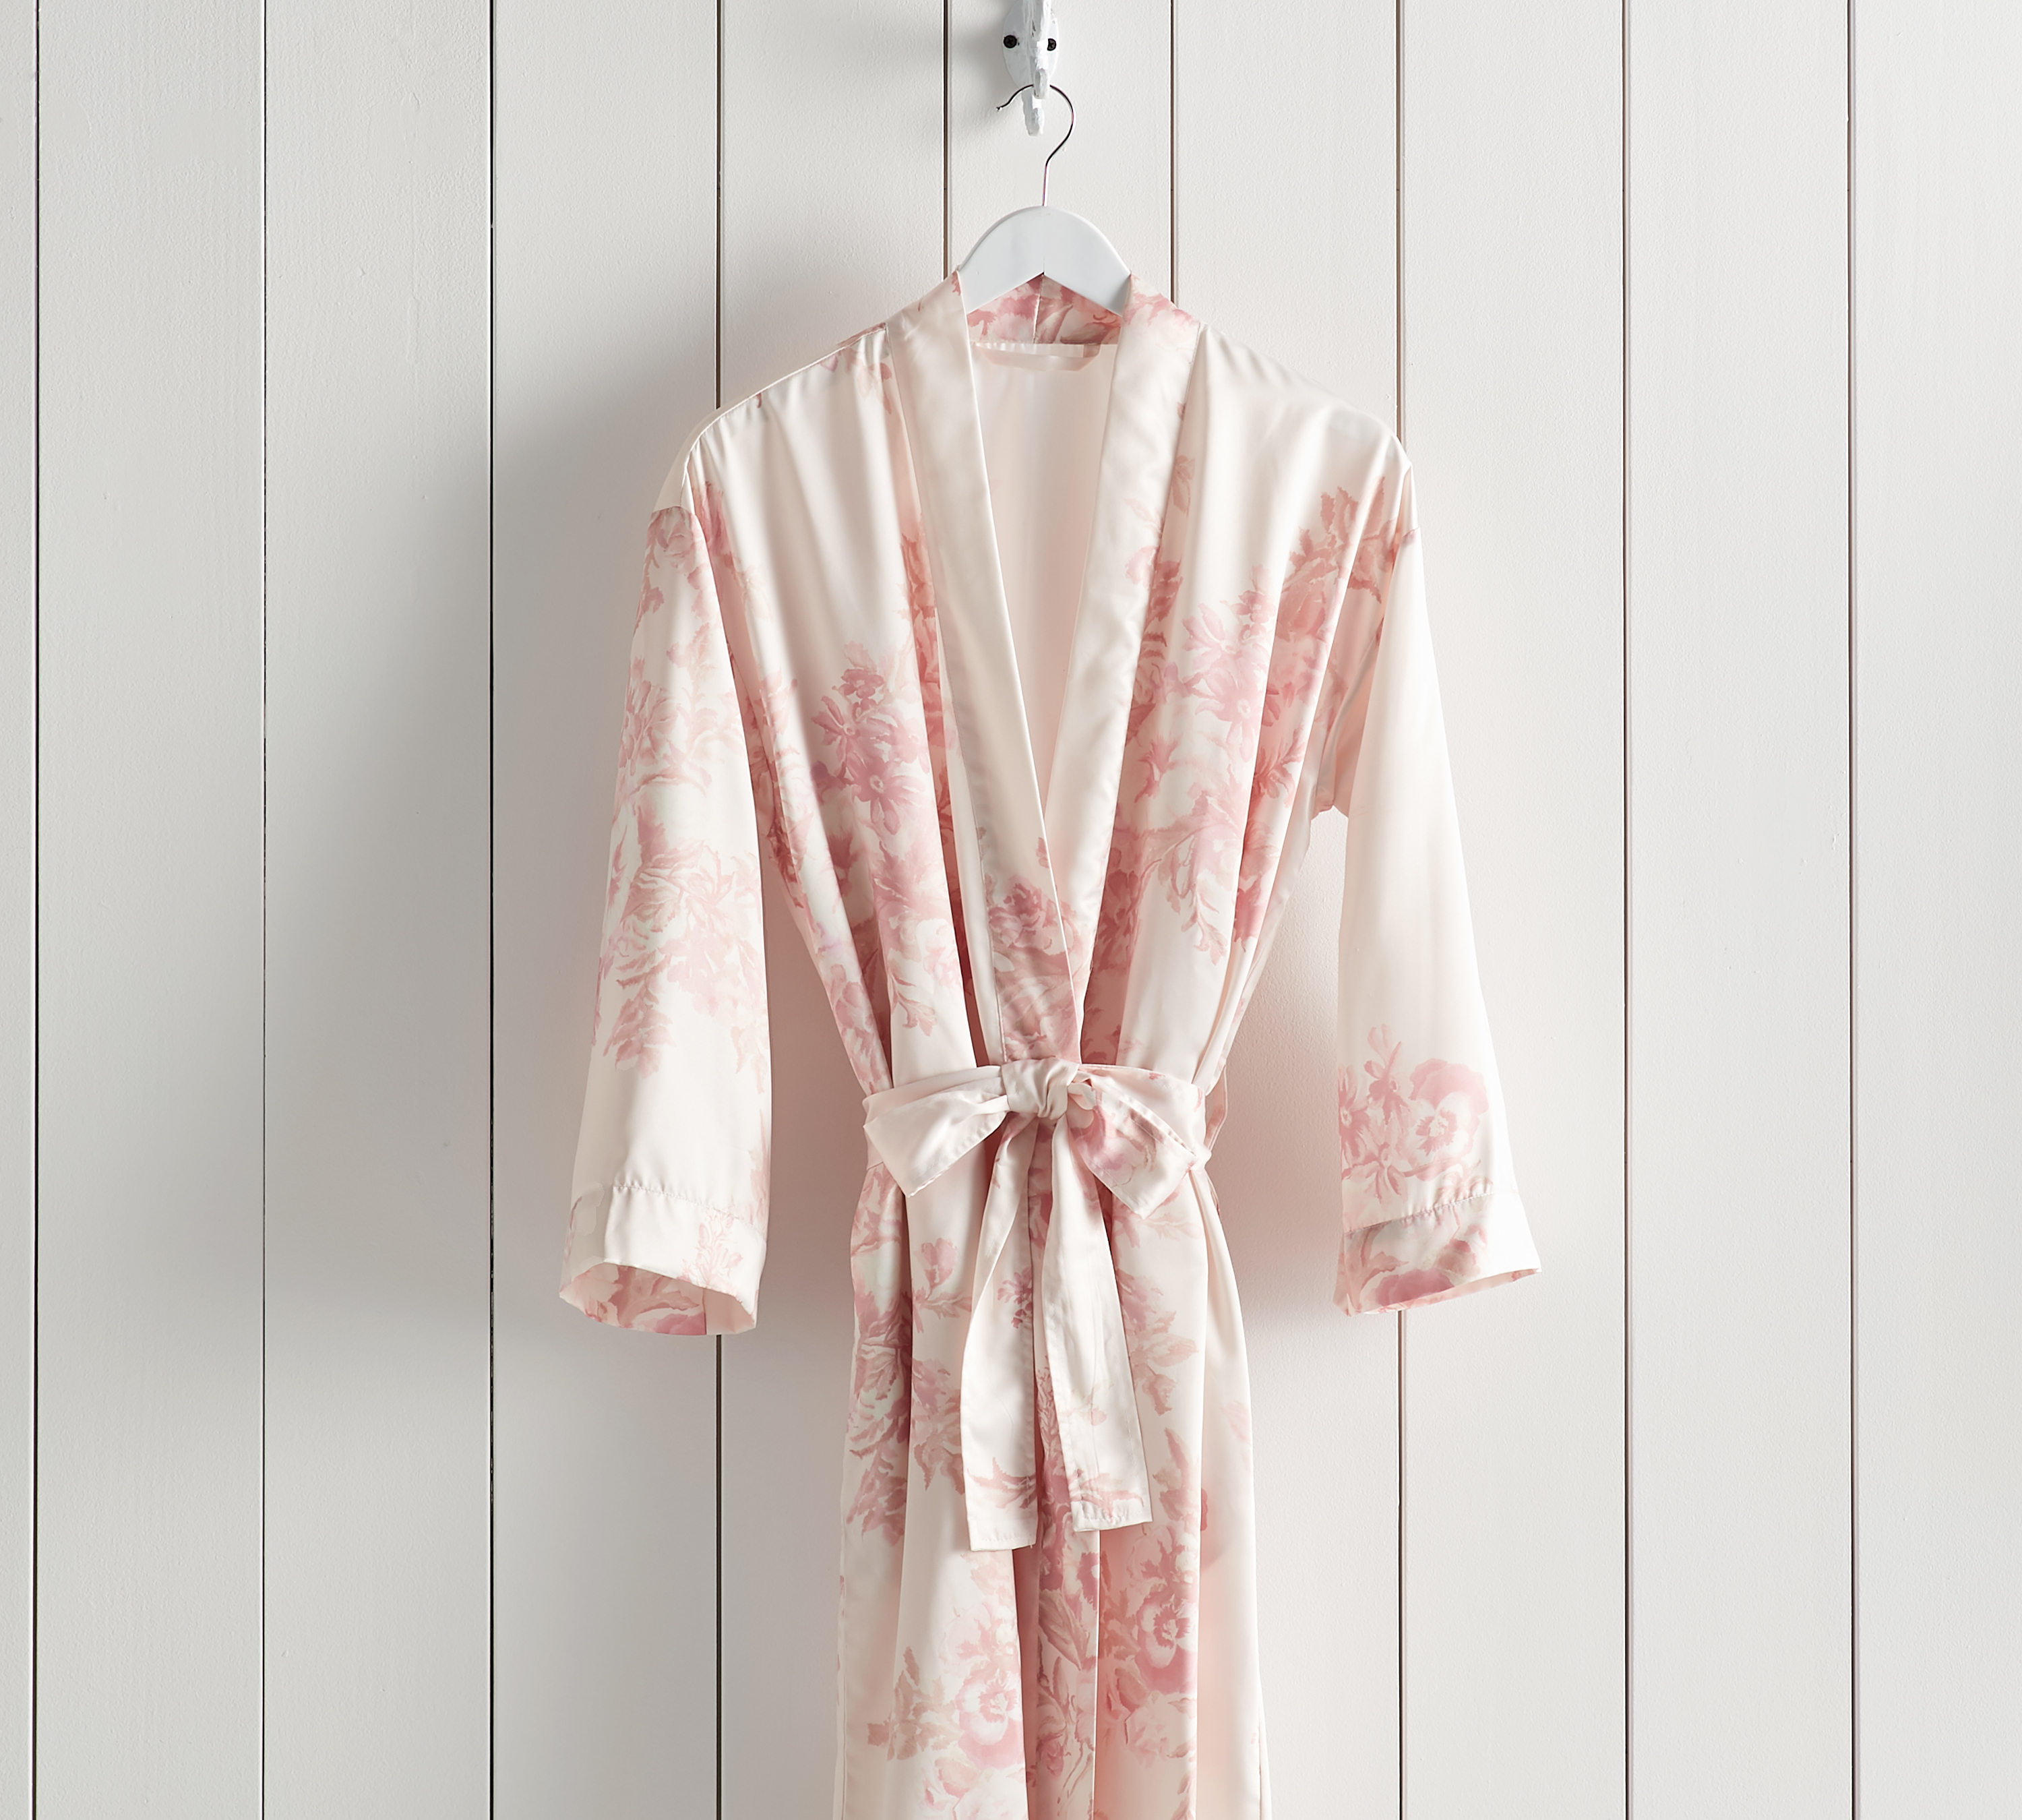 monique lhuillier new pottery barn collection must moniquelhuillierfloralkimonorobe flower accent table floral kimono robe for spring credit end reclaimed wood office furniture